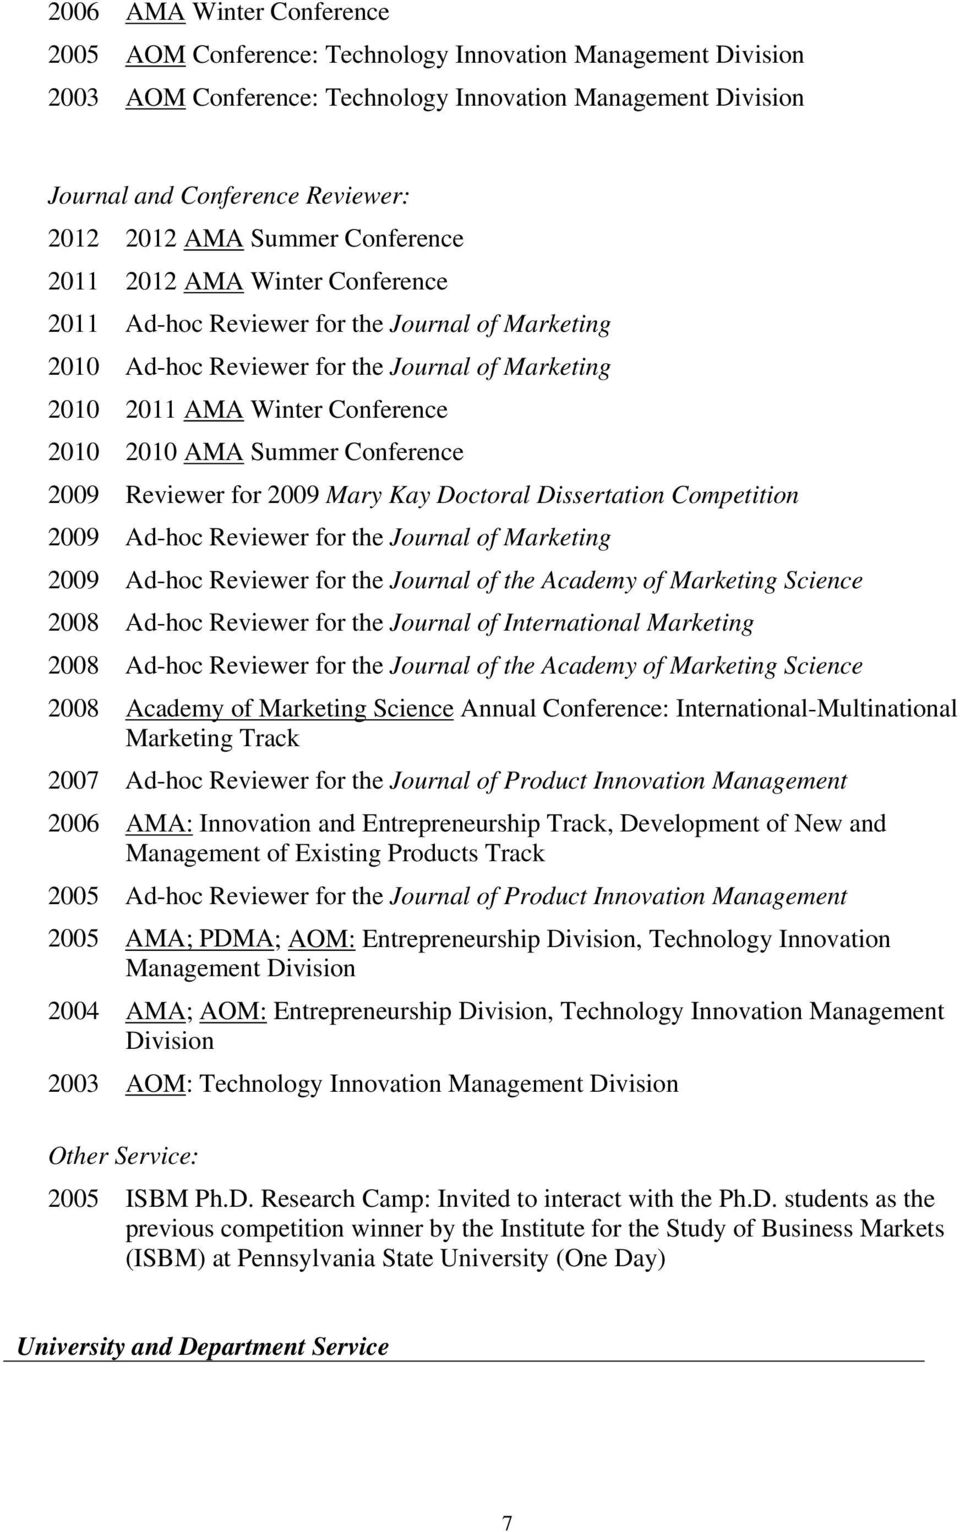 Summer Conference 2009 Reviewer for 2009 Mary Kay Doctoral Dissertation Competition 2009 Ad-hoc Reviewer for the Journal of Marketing 2009 Ad-hoc Reviewer for the Journal of the Academy of Marketing